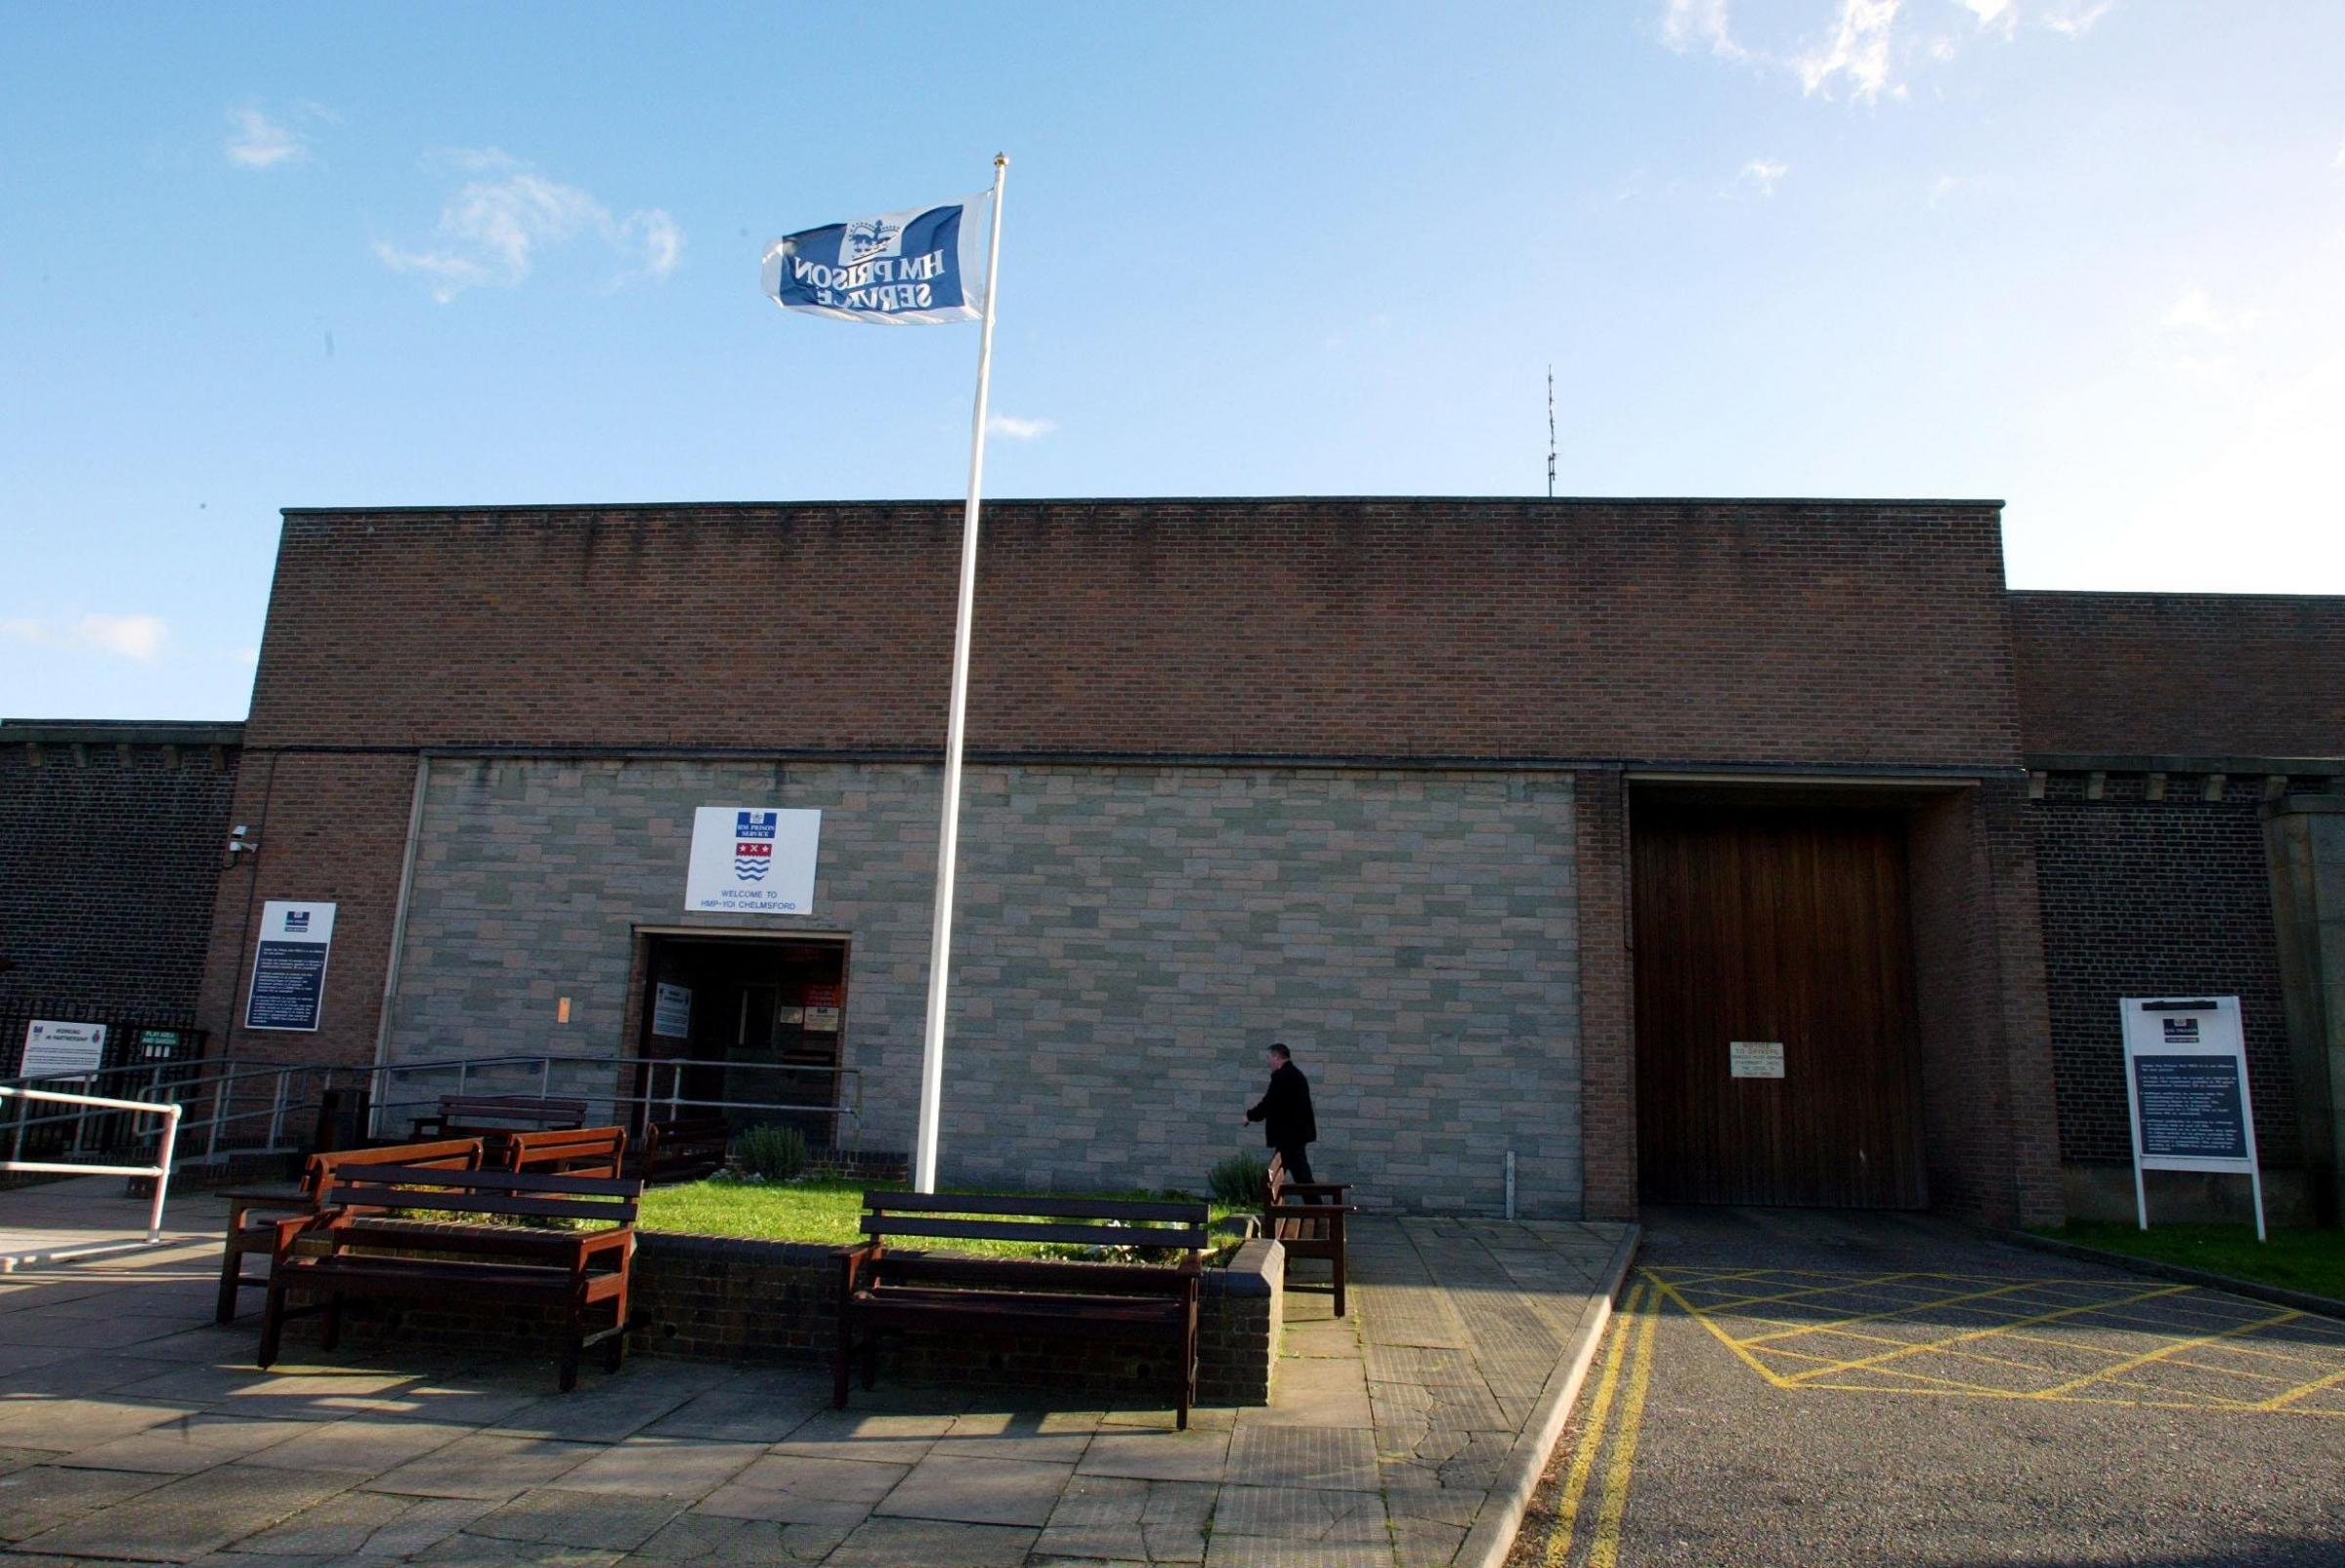 Inadequate staffing levels puts staff and inmates